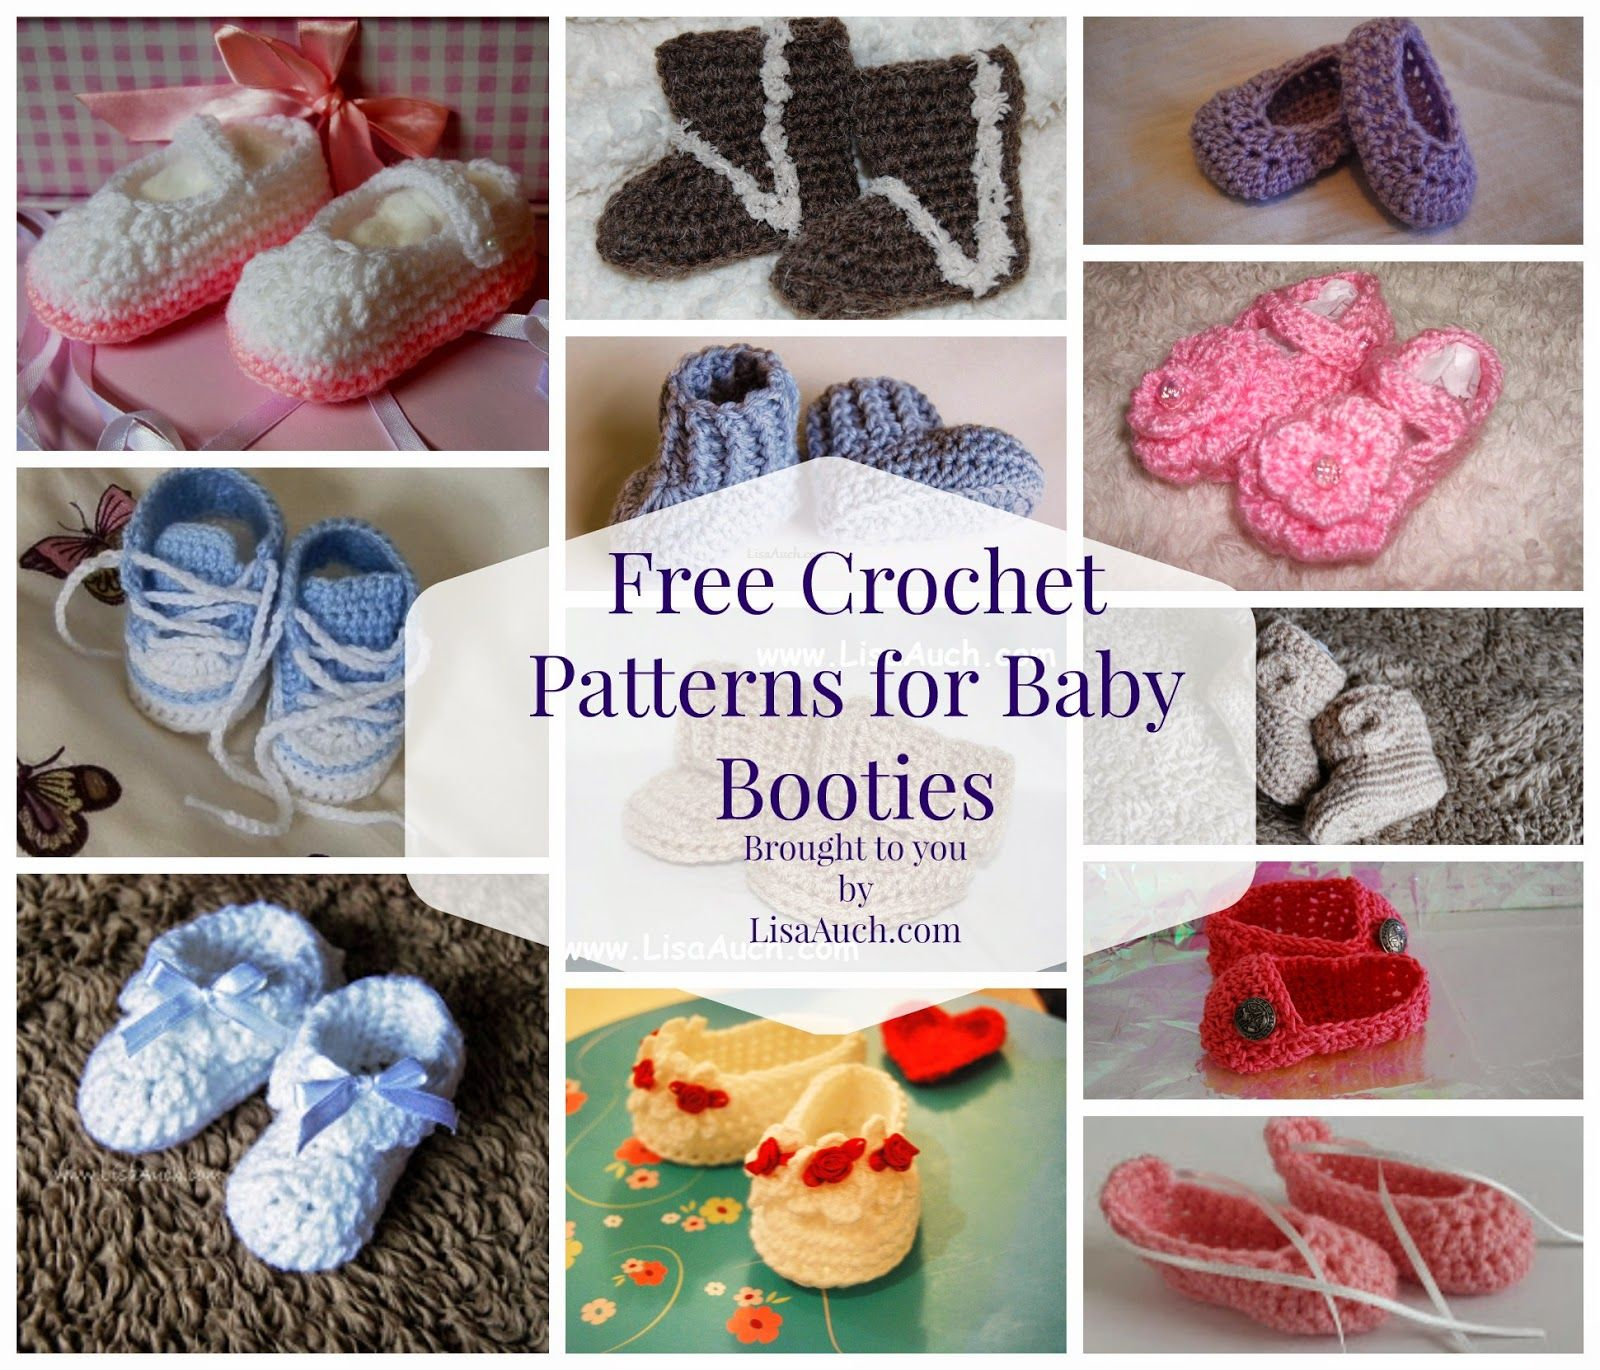 Free crochet patterns baby booties free crochet patterns baby free crochet patterns baby booties dt1010fo